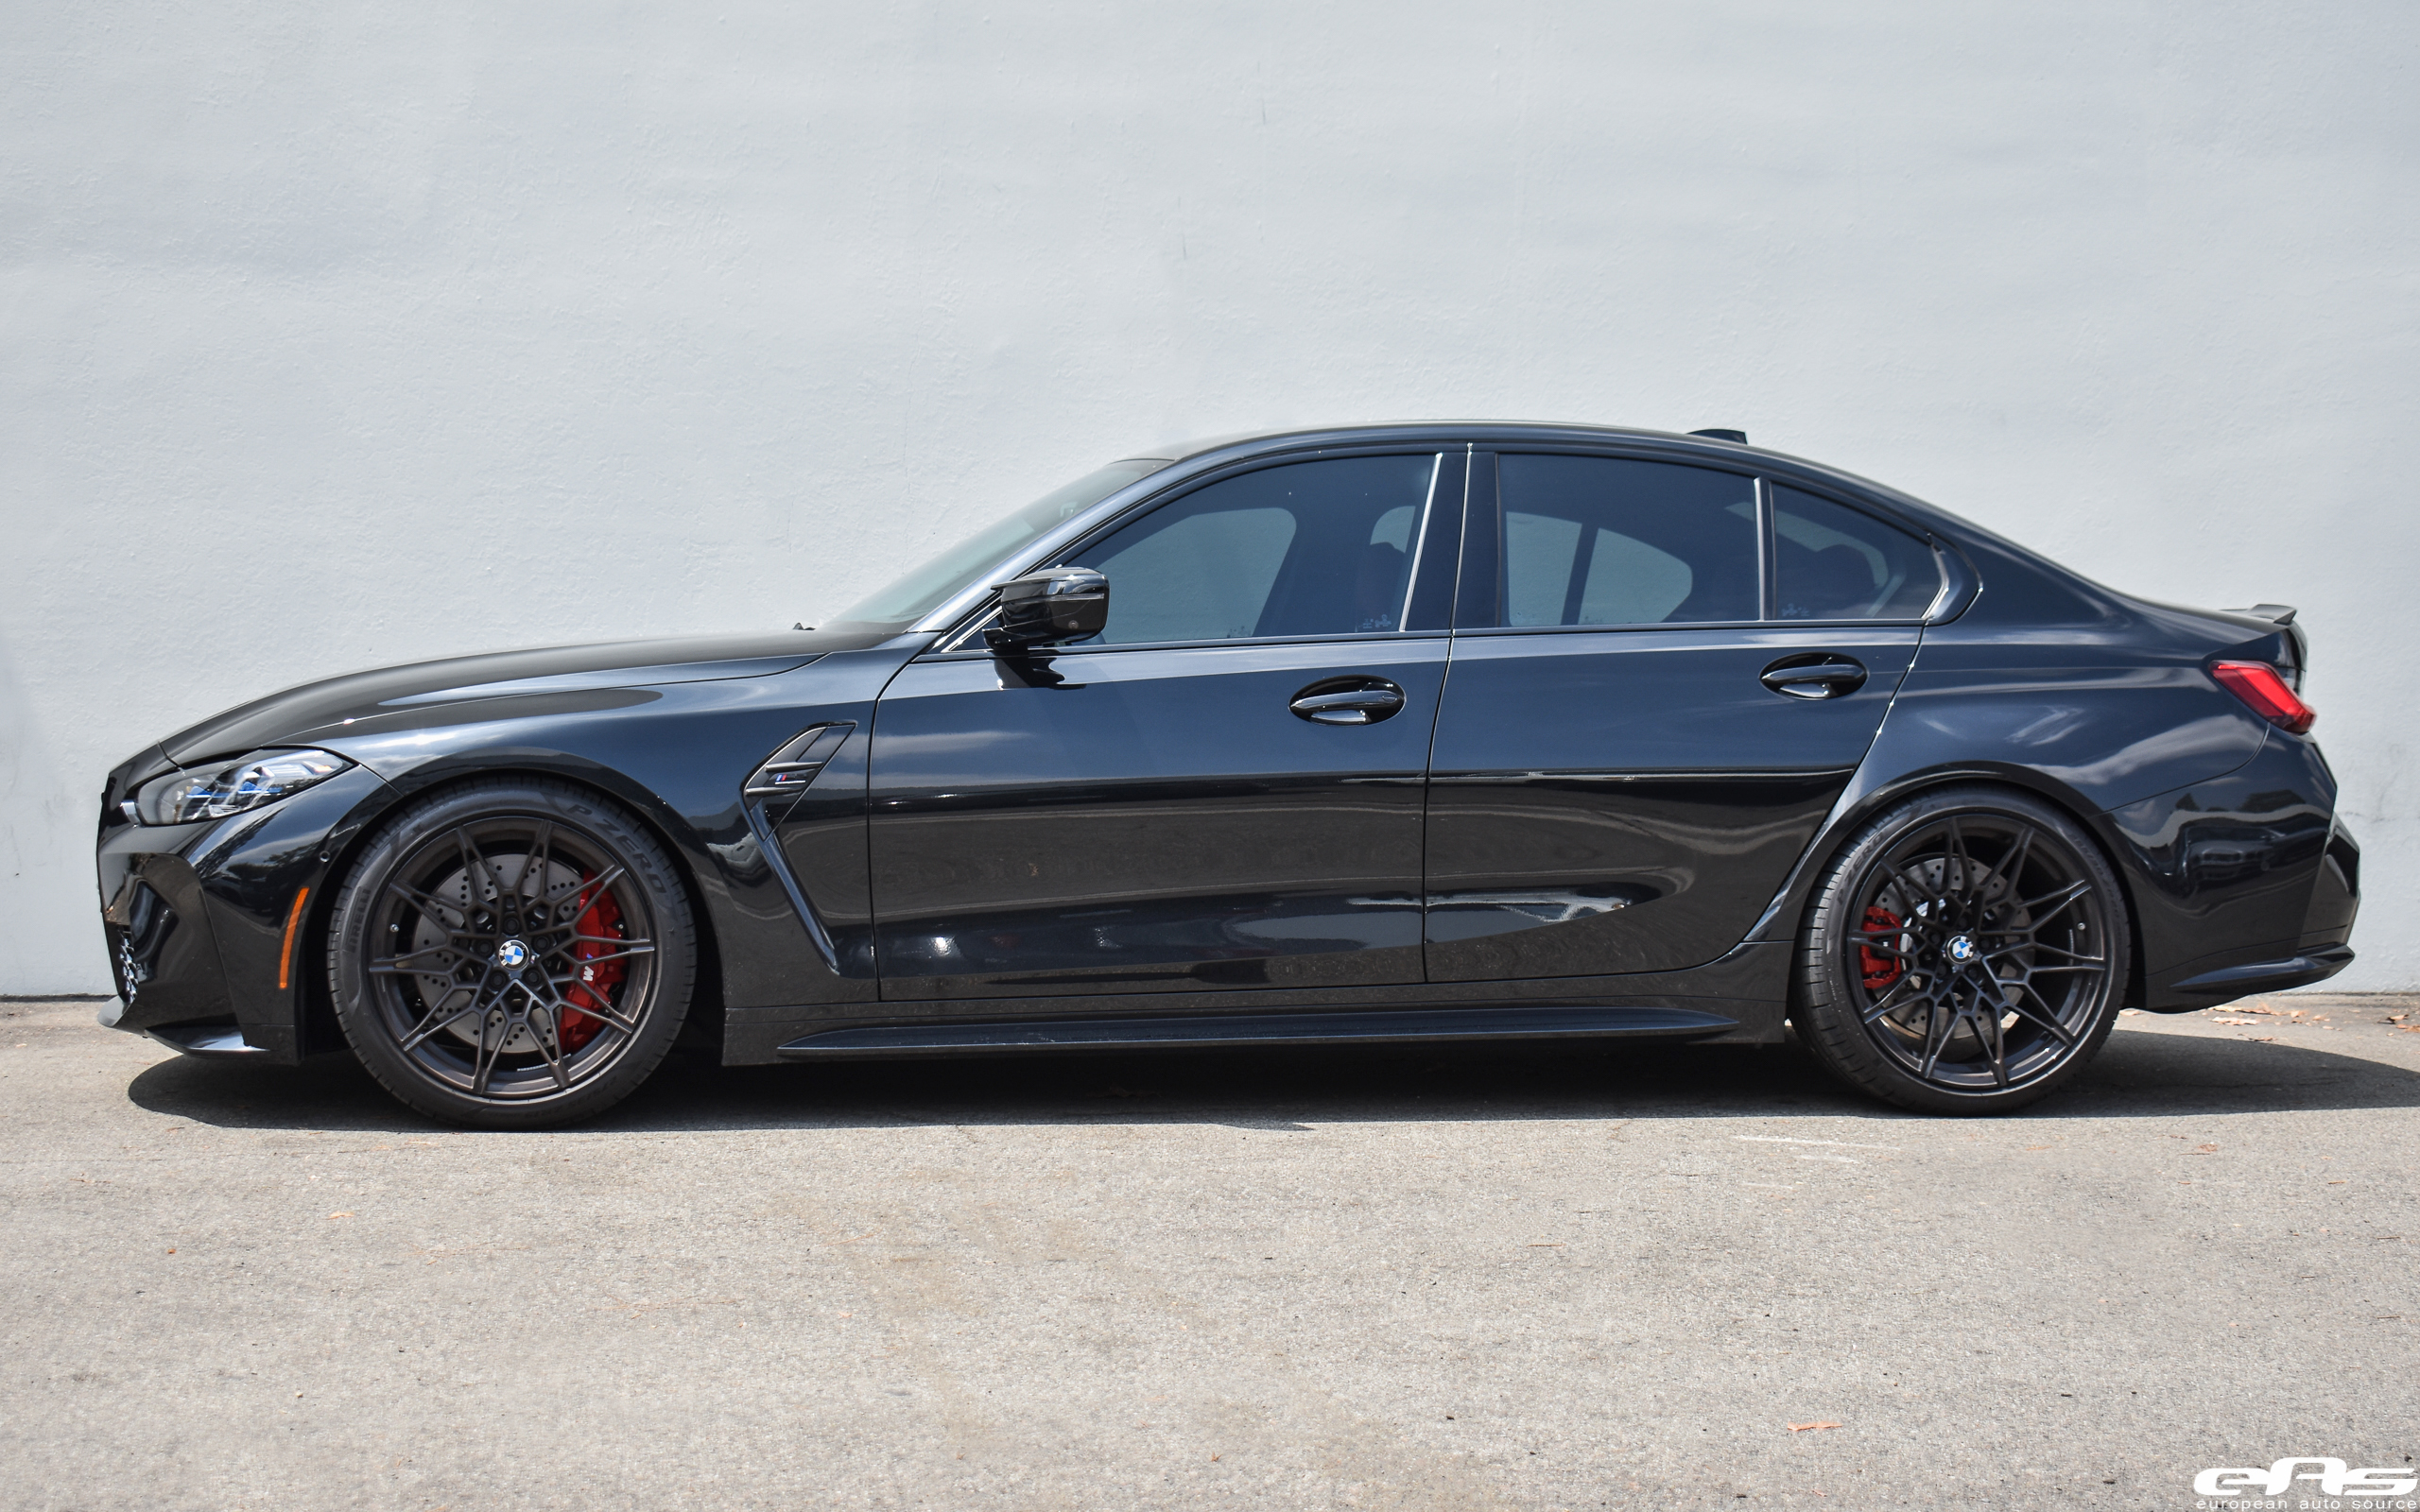 Black Sapphire Metallic G80 M3 Competition - AST Suspension Lowering Springs & Macht Schnell Competition Wheel Spacers